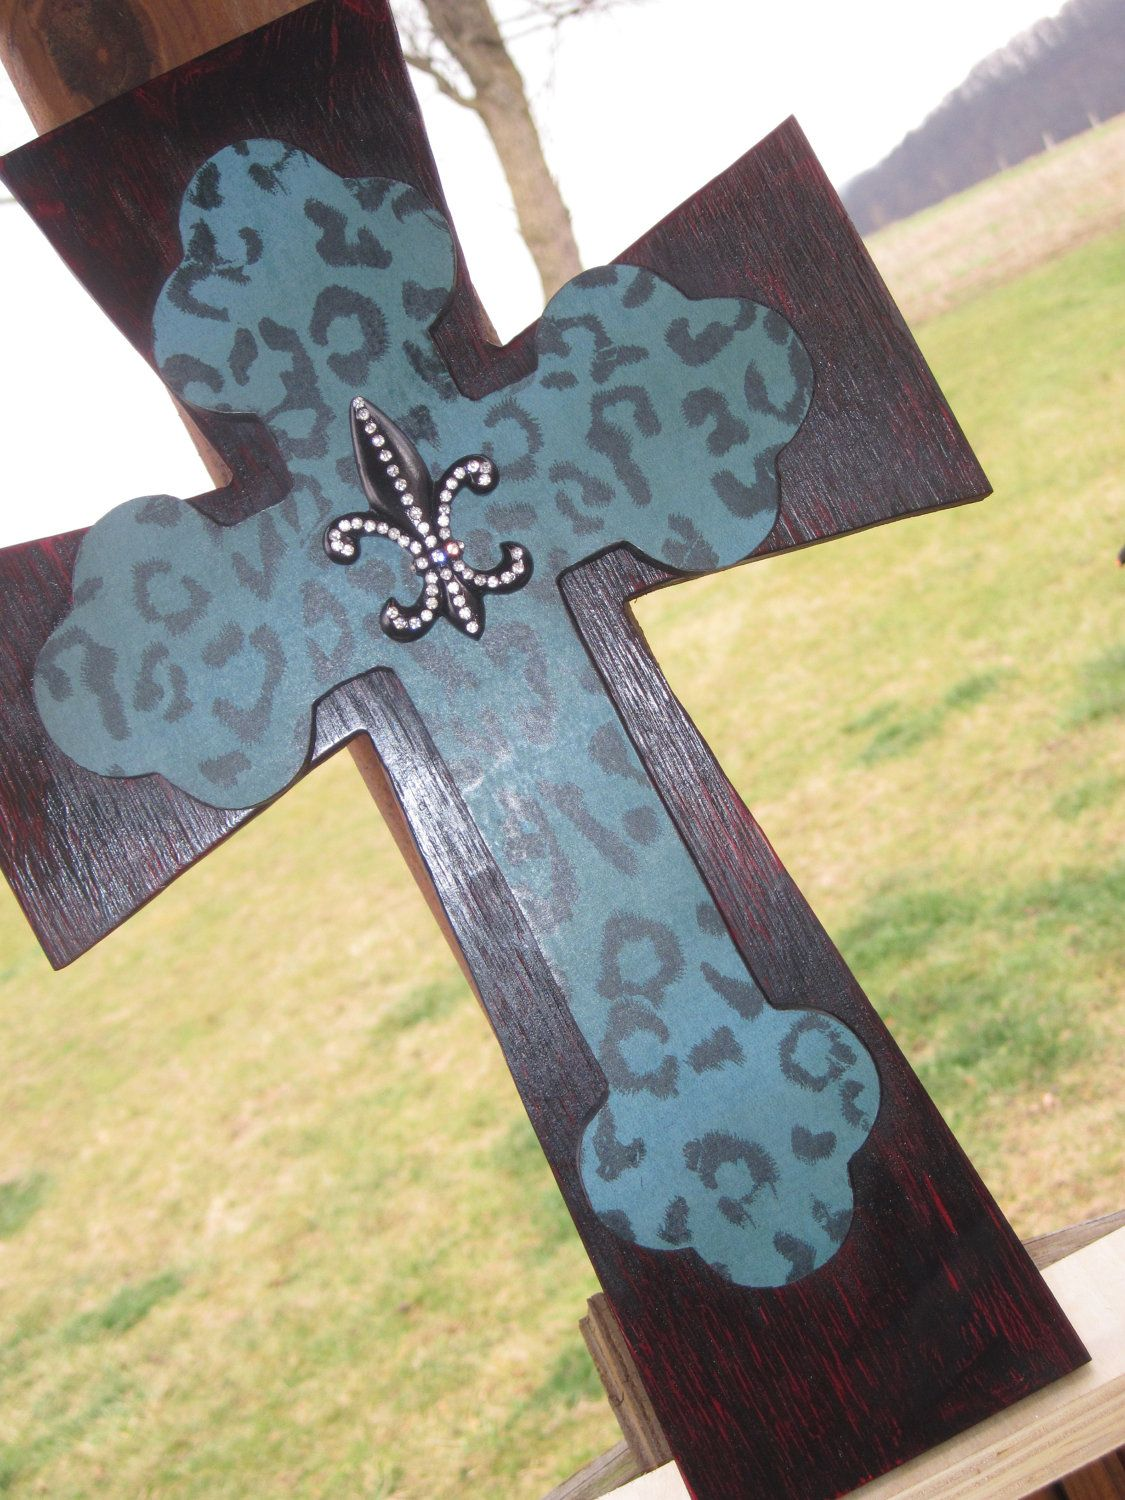 Modern Decorative Wall Cross Image - Wall Art Collections ...